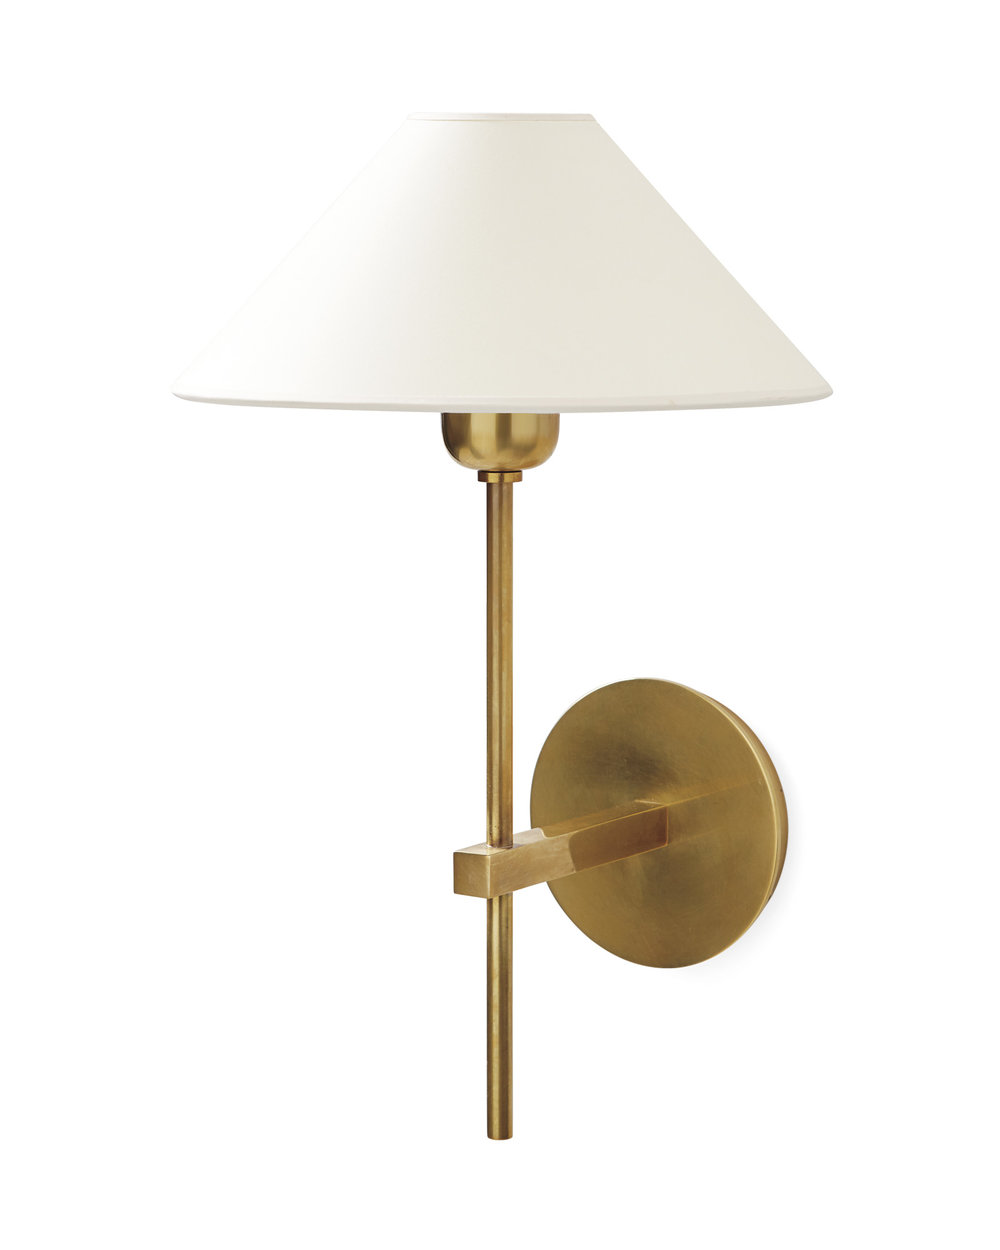 Lighting_Sconce_Waverly_Antique_Brass_MV_1573_Crop_SH.jpg